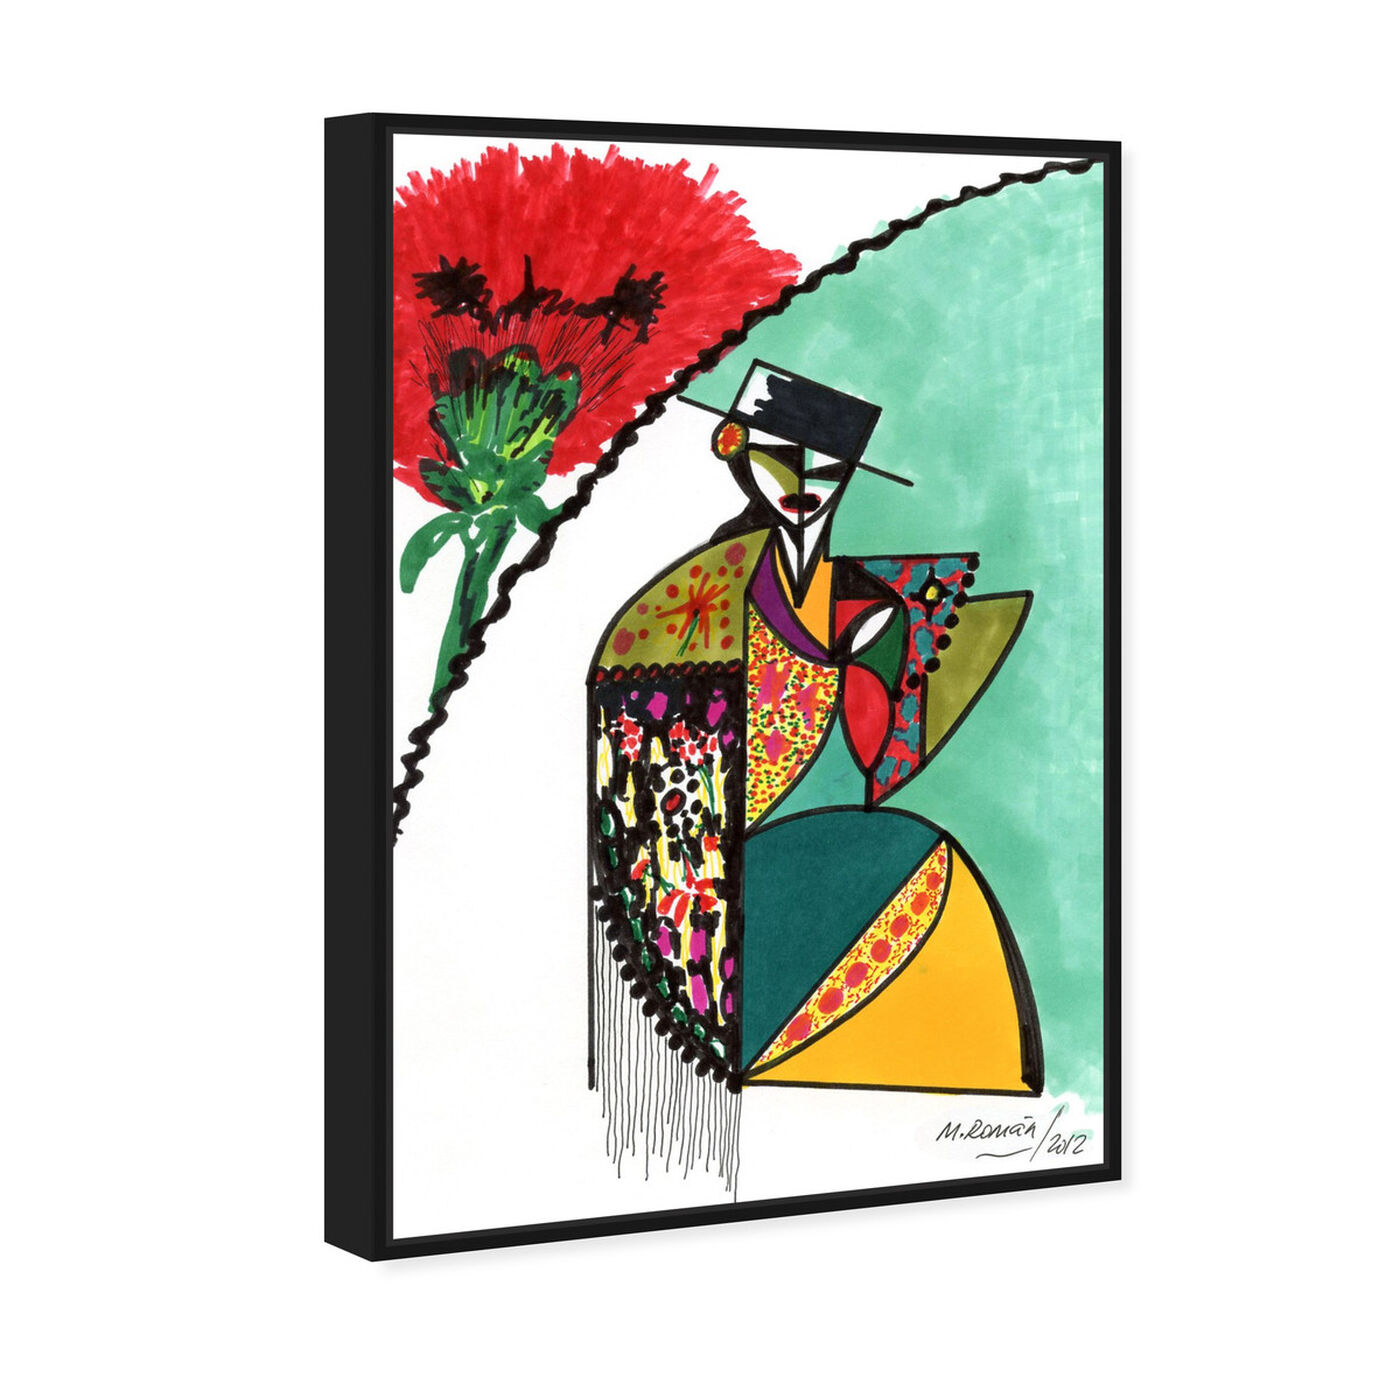 Angled view of Flamenca featuring music and dance and dance art.